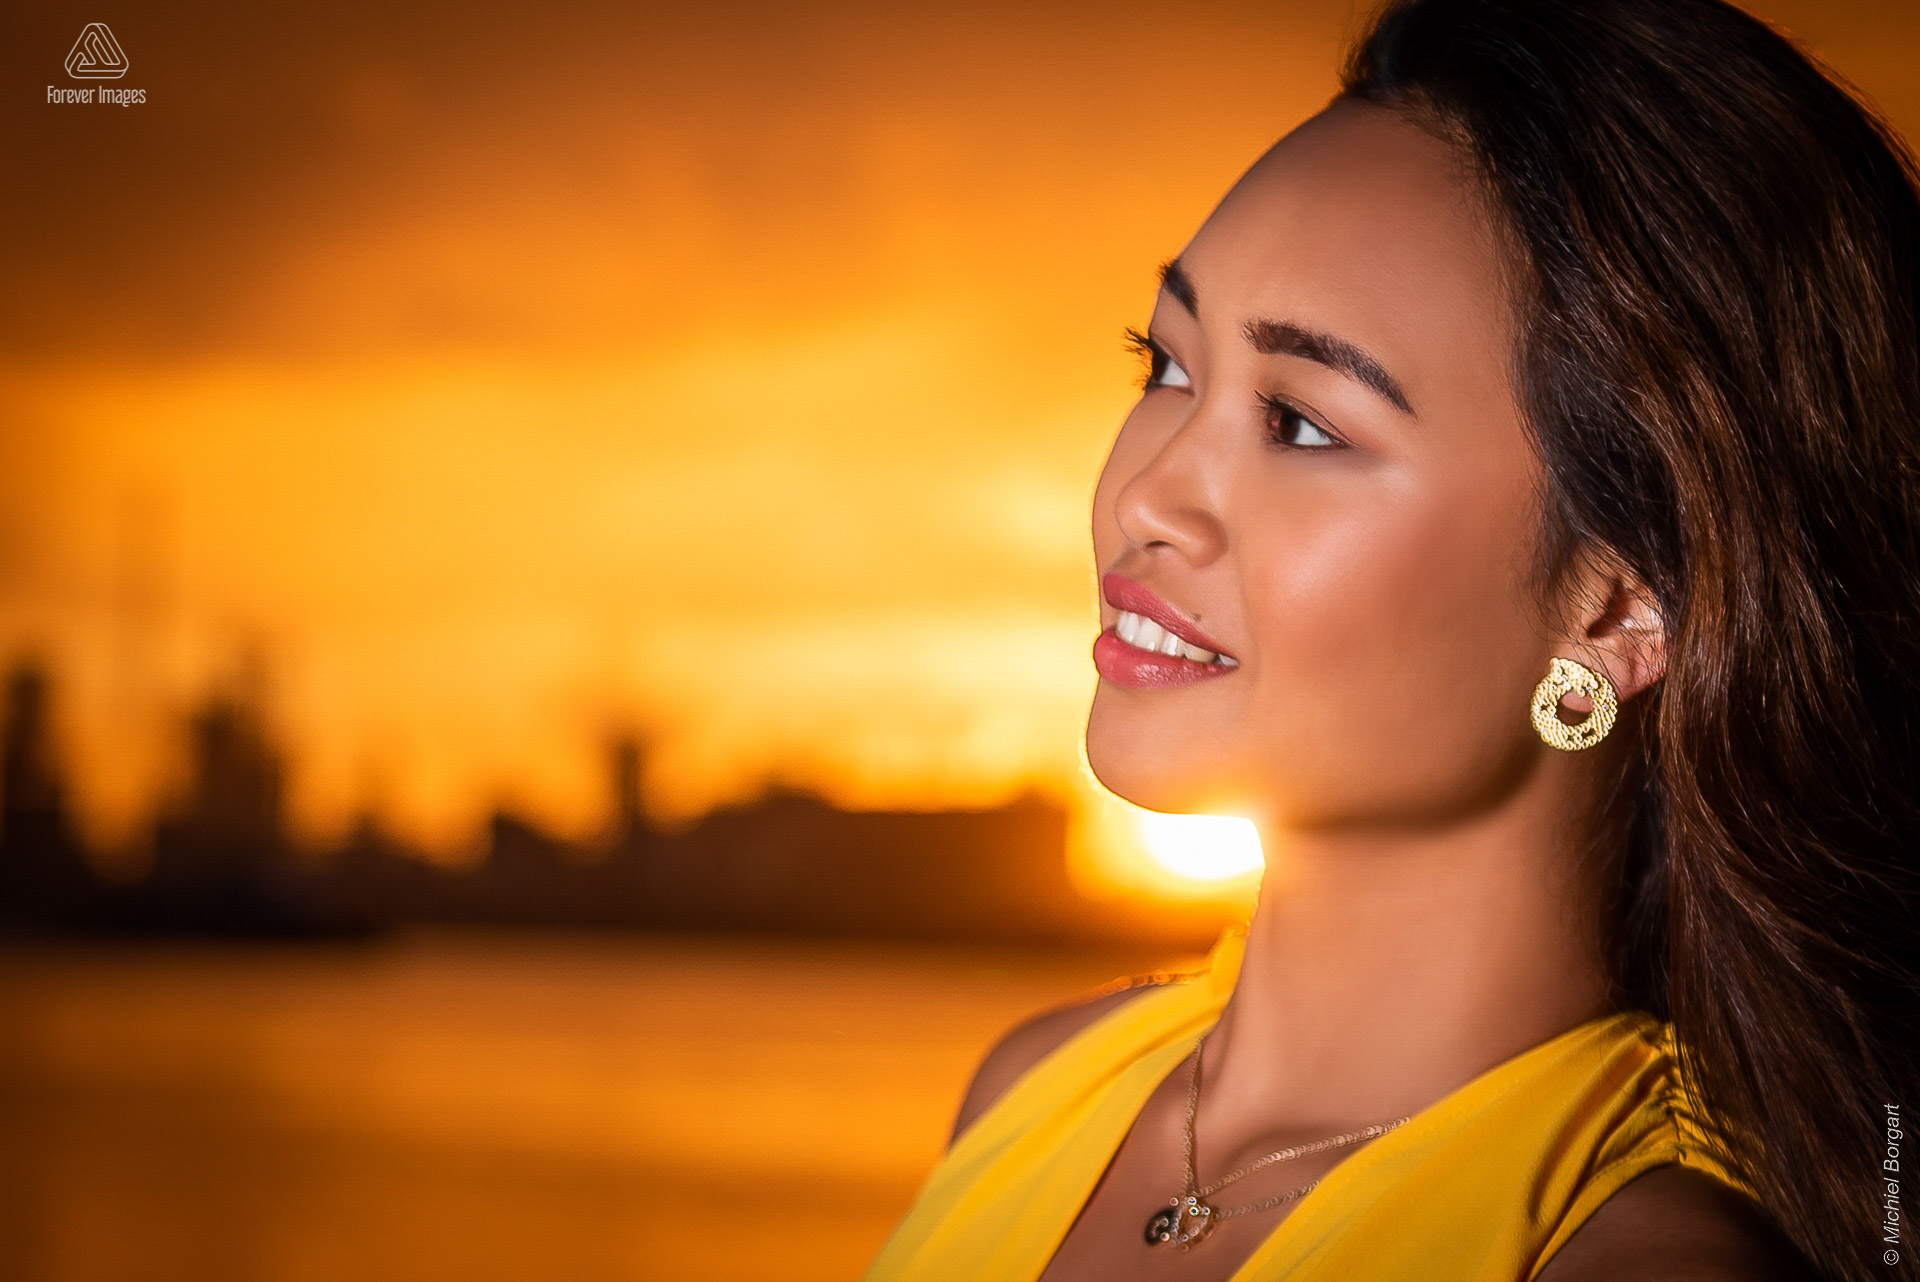 Portrait photo warm sunset sun rays along neckline | Carolyn Collinda Sint Annastrand Linkeroever | Portrait Photographer Michiel Borgart - Forever Images.